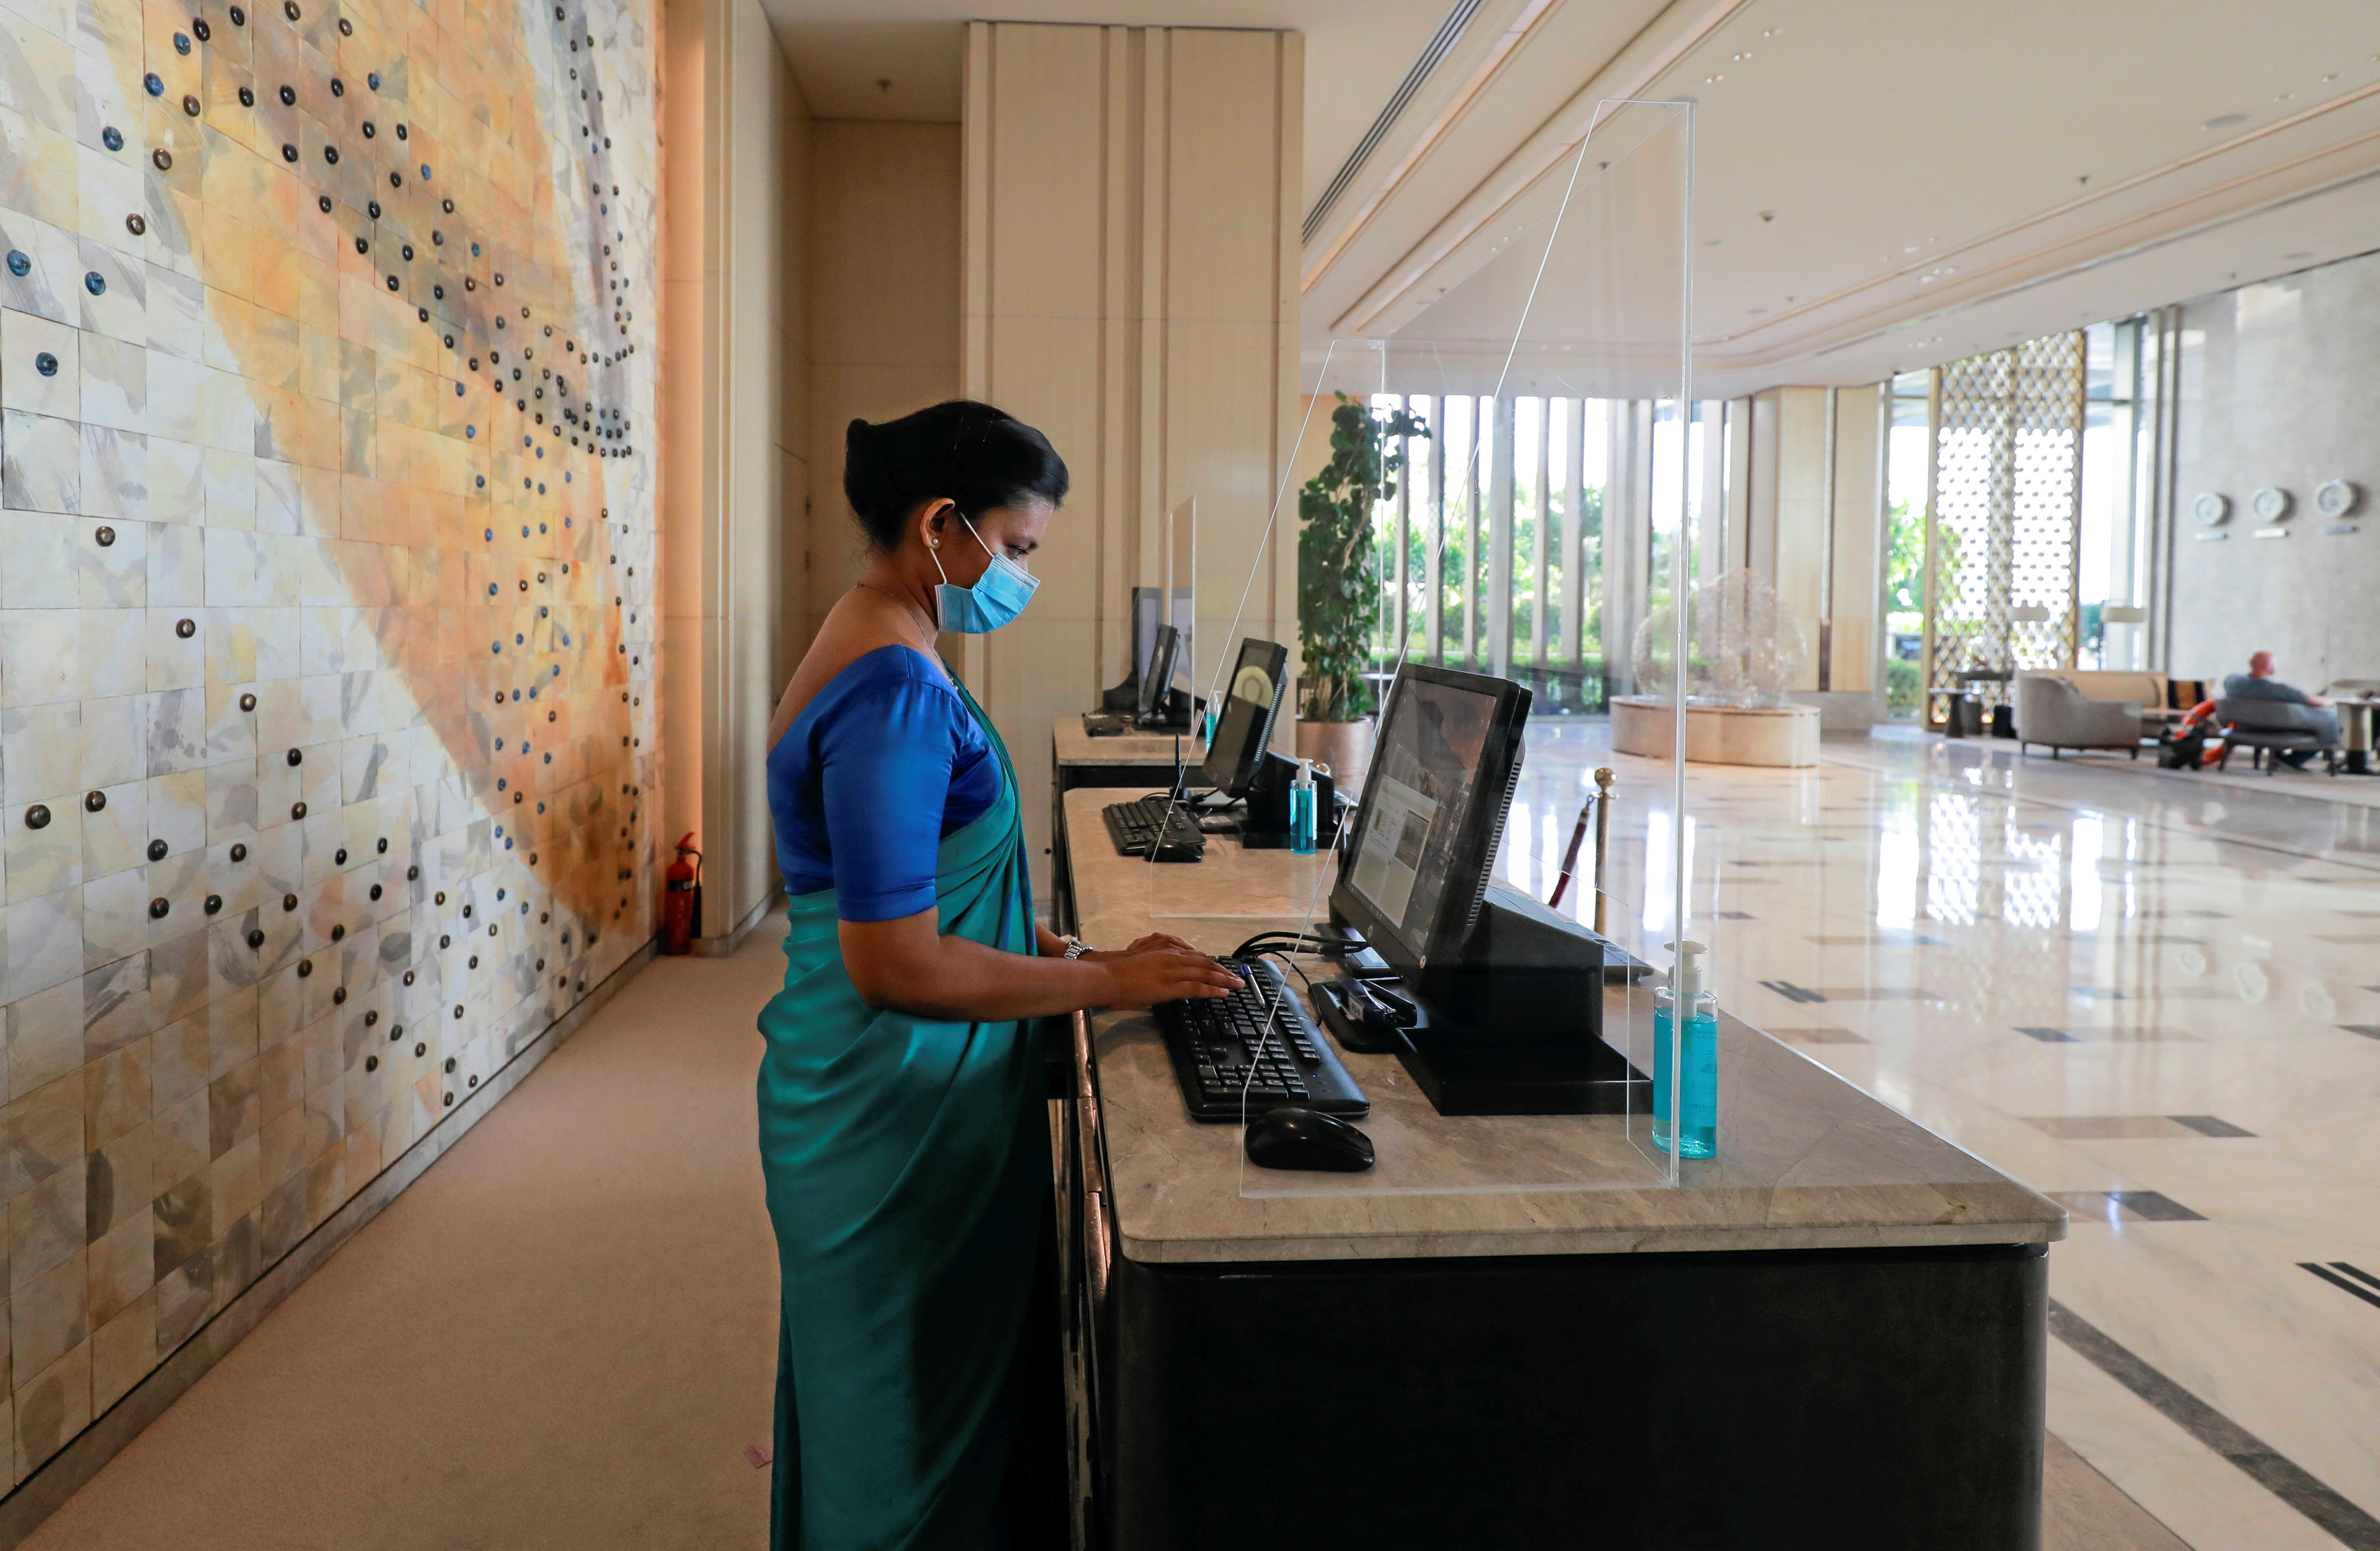 A receptionist wearing a protective mask is seen behind a protective screen at the main entrance of the Shangri-La hotel, amid concerns about the spread of the coronavirus disease (COVID-19), in Colombo, Sri Lanka, July 1, 2020. REUTERS/Dinuka Liyanawatte - RC2EKH98LCDQ